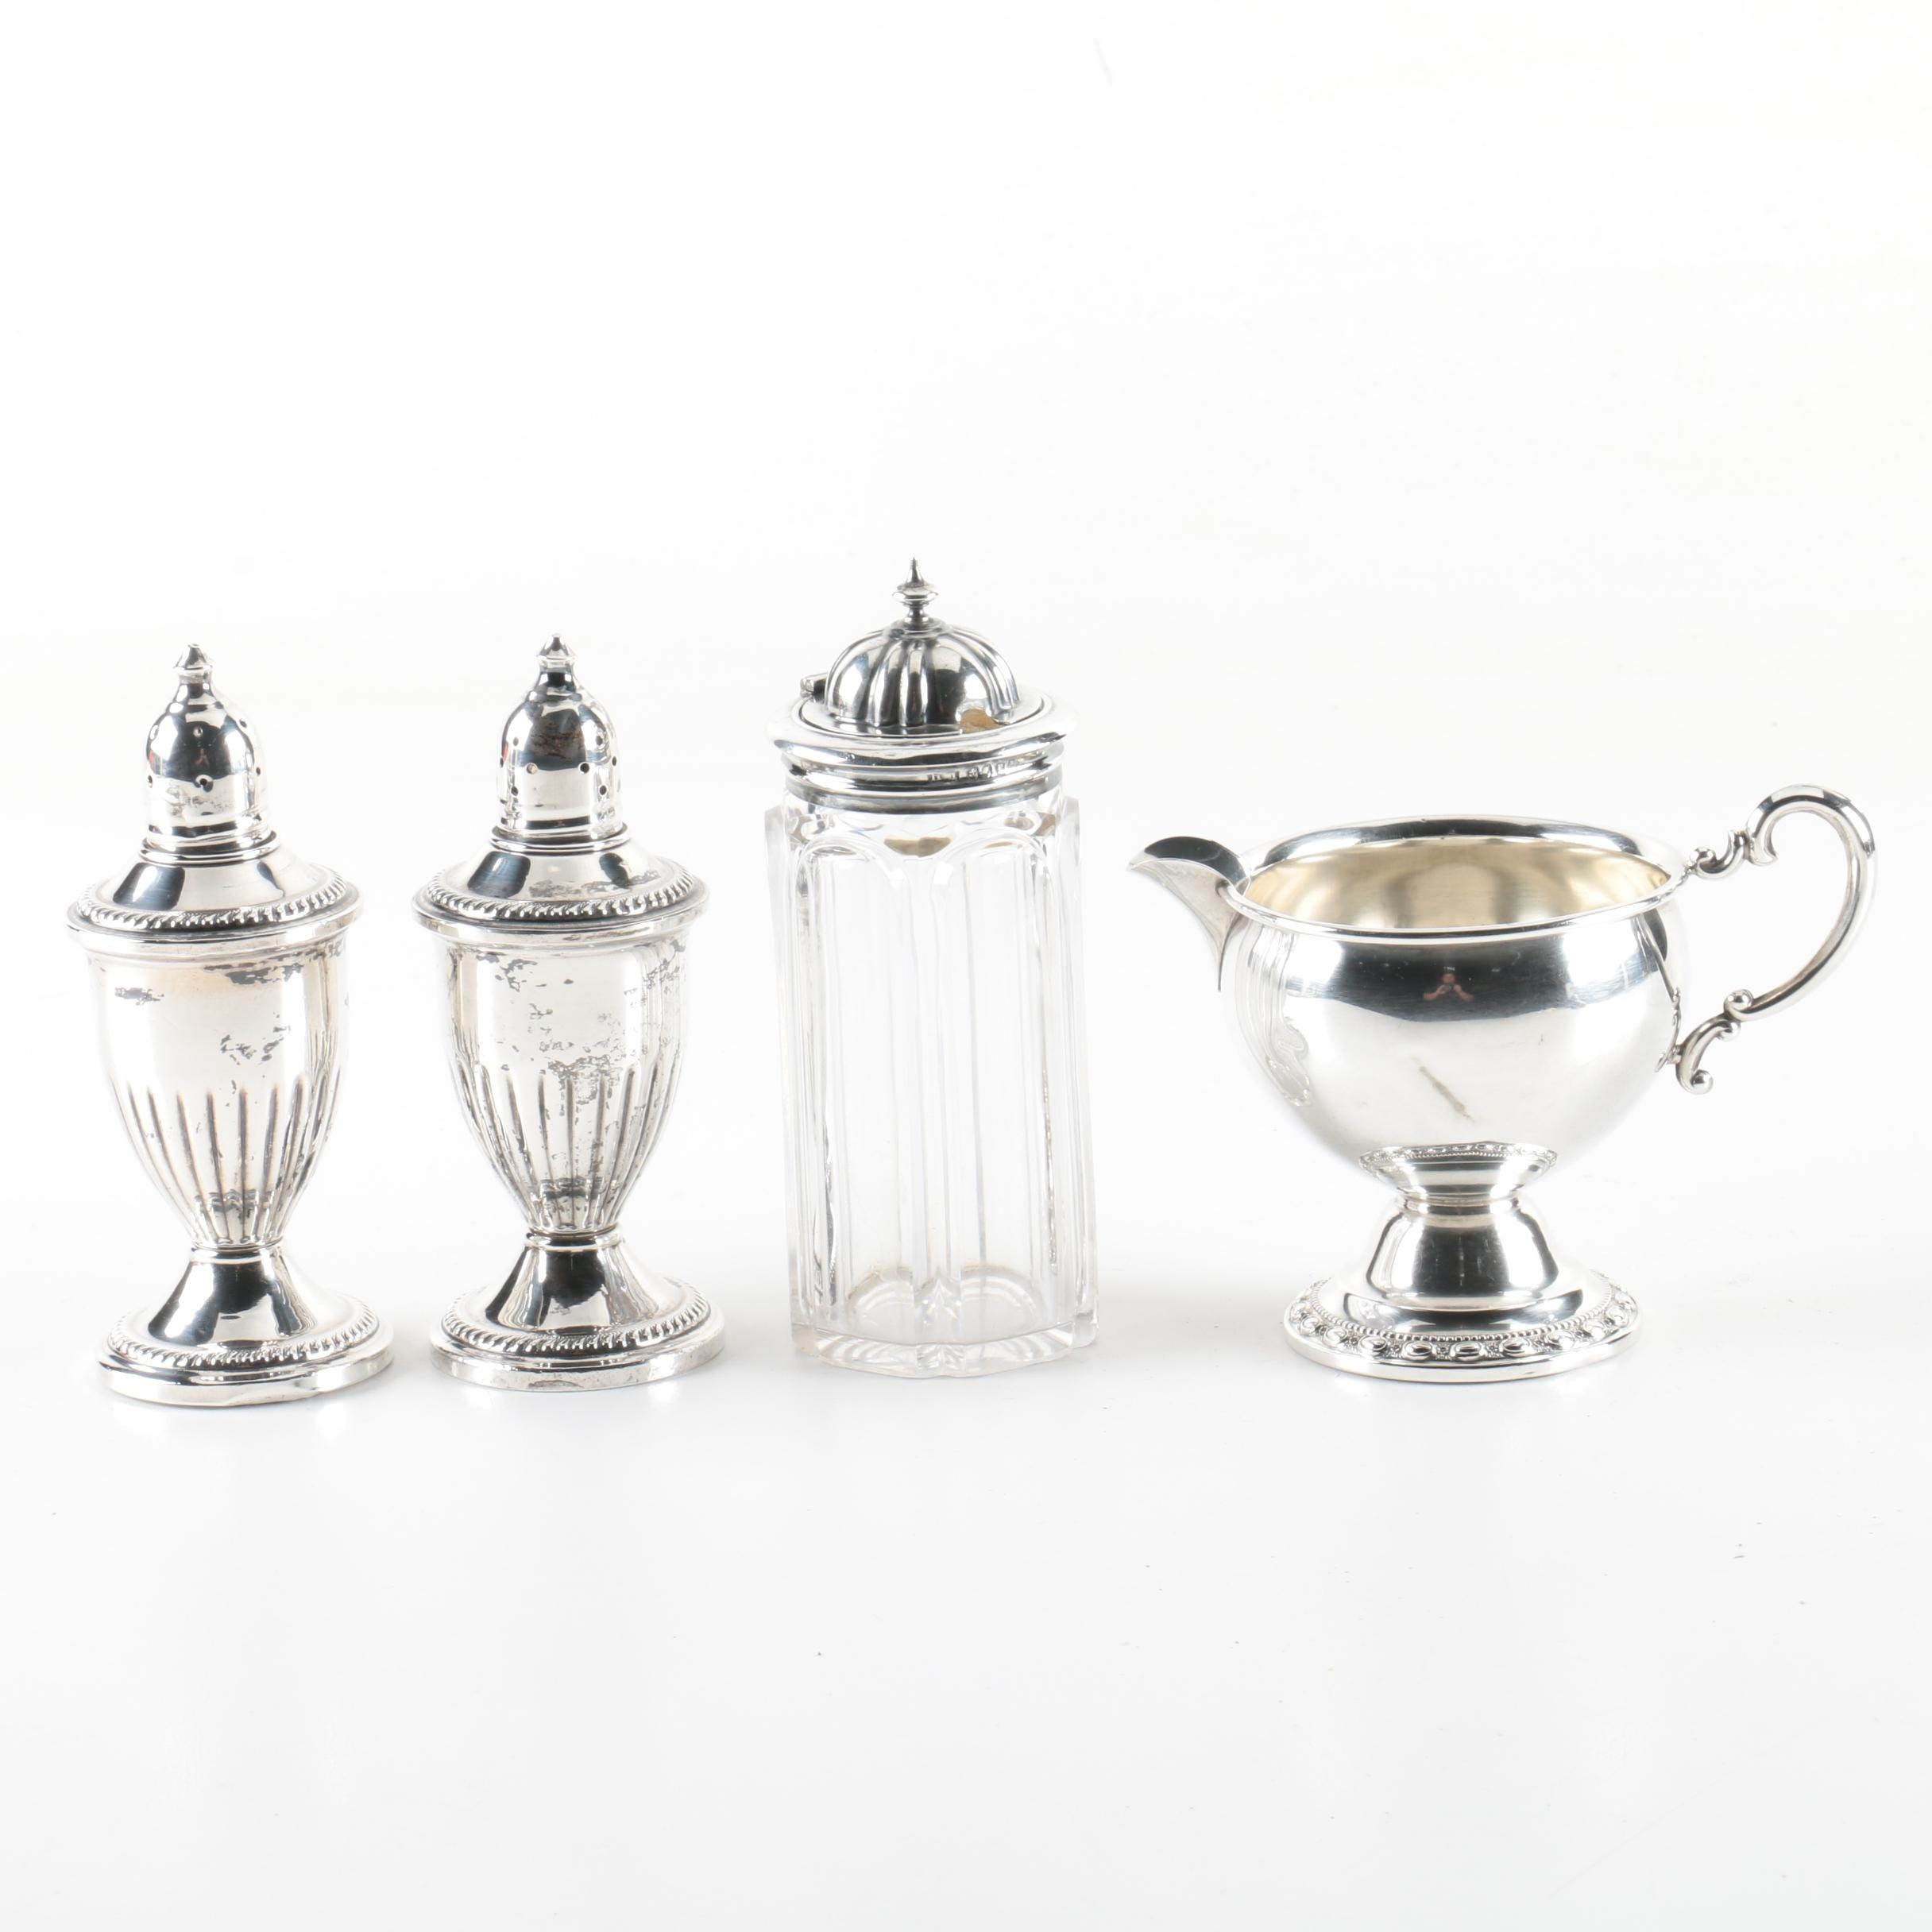 1854 Henry Manton Glass and Sterling Caster with Weighted Creamer and Shakers